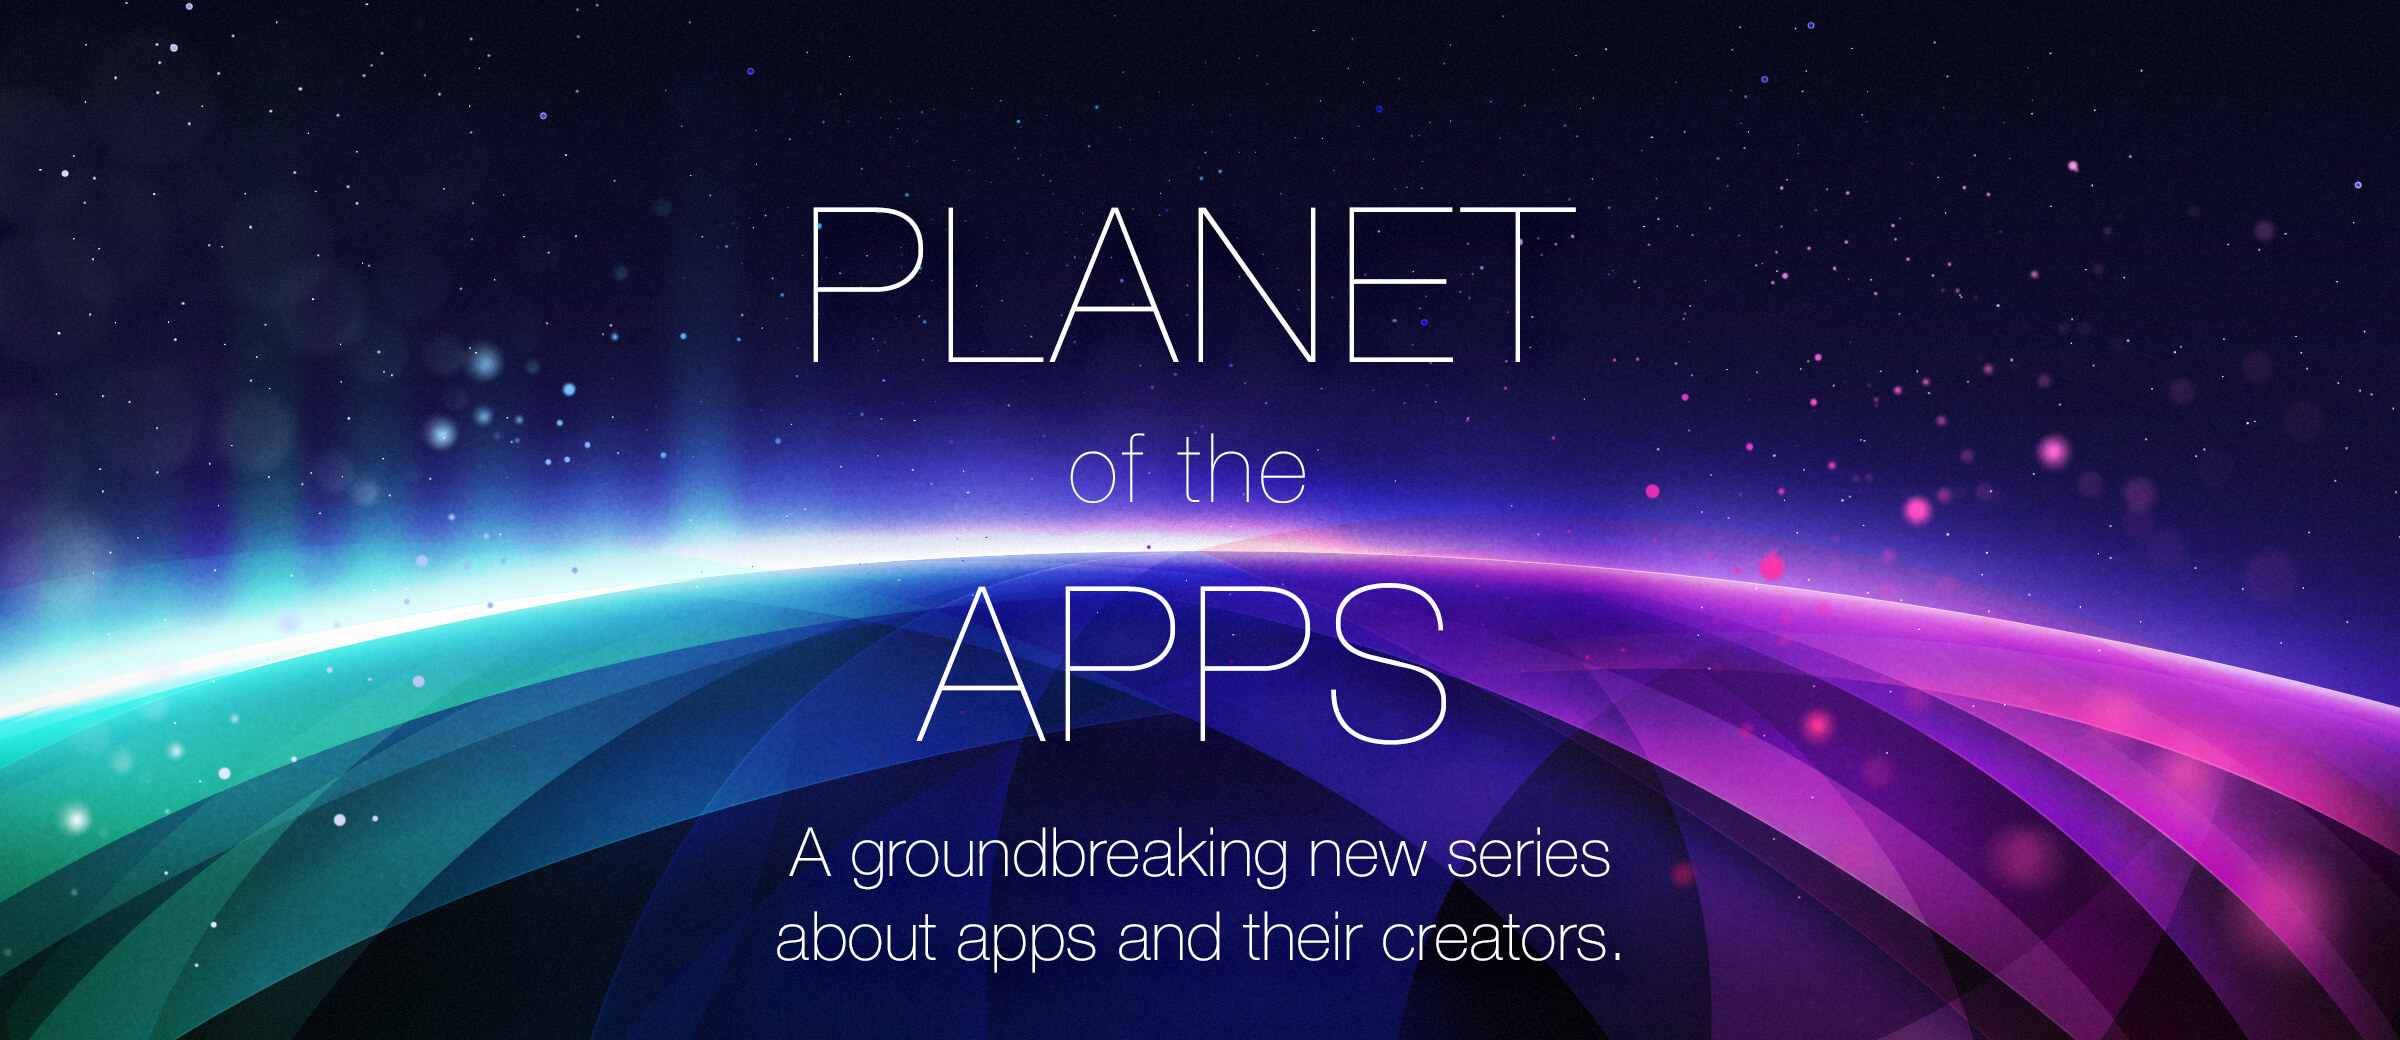 planet-of-the-apps.jpeg